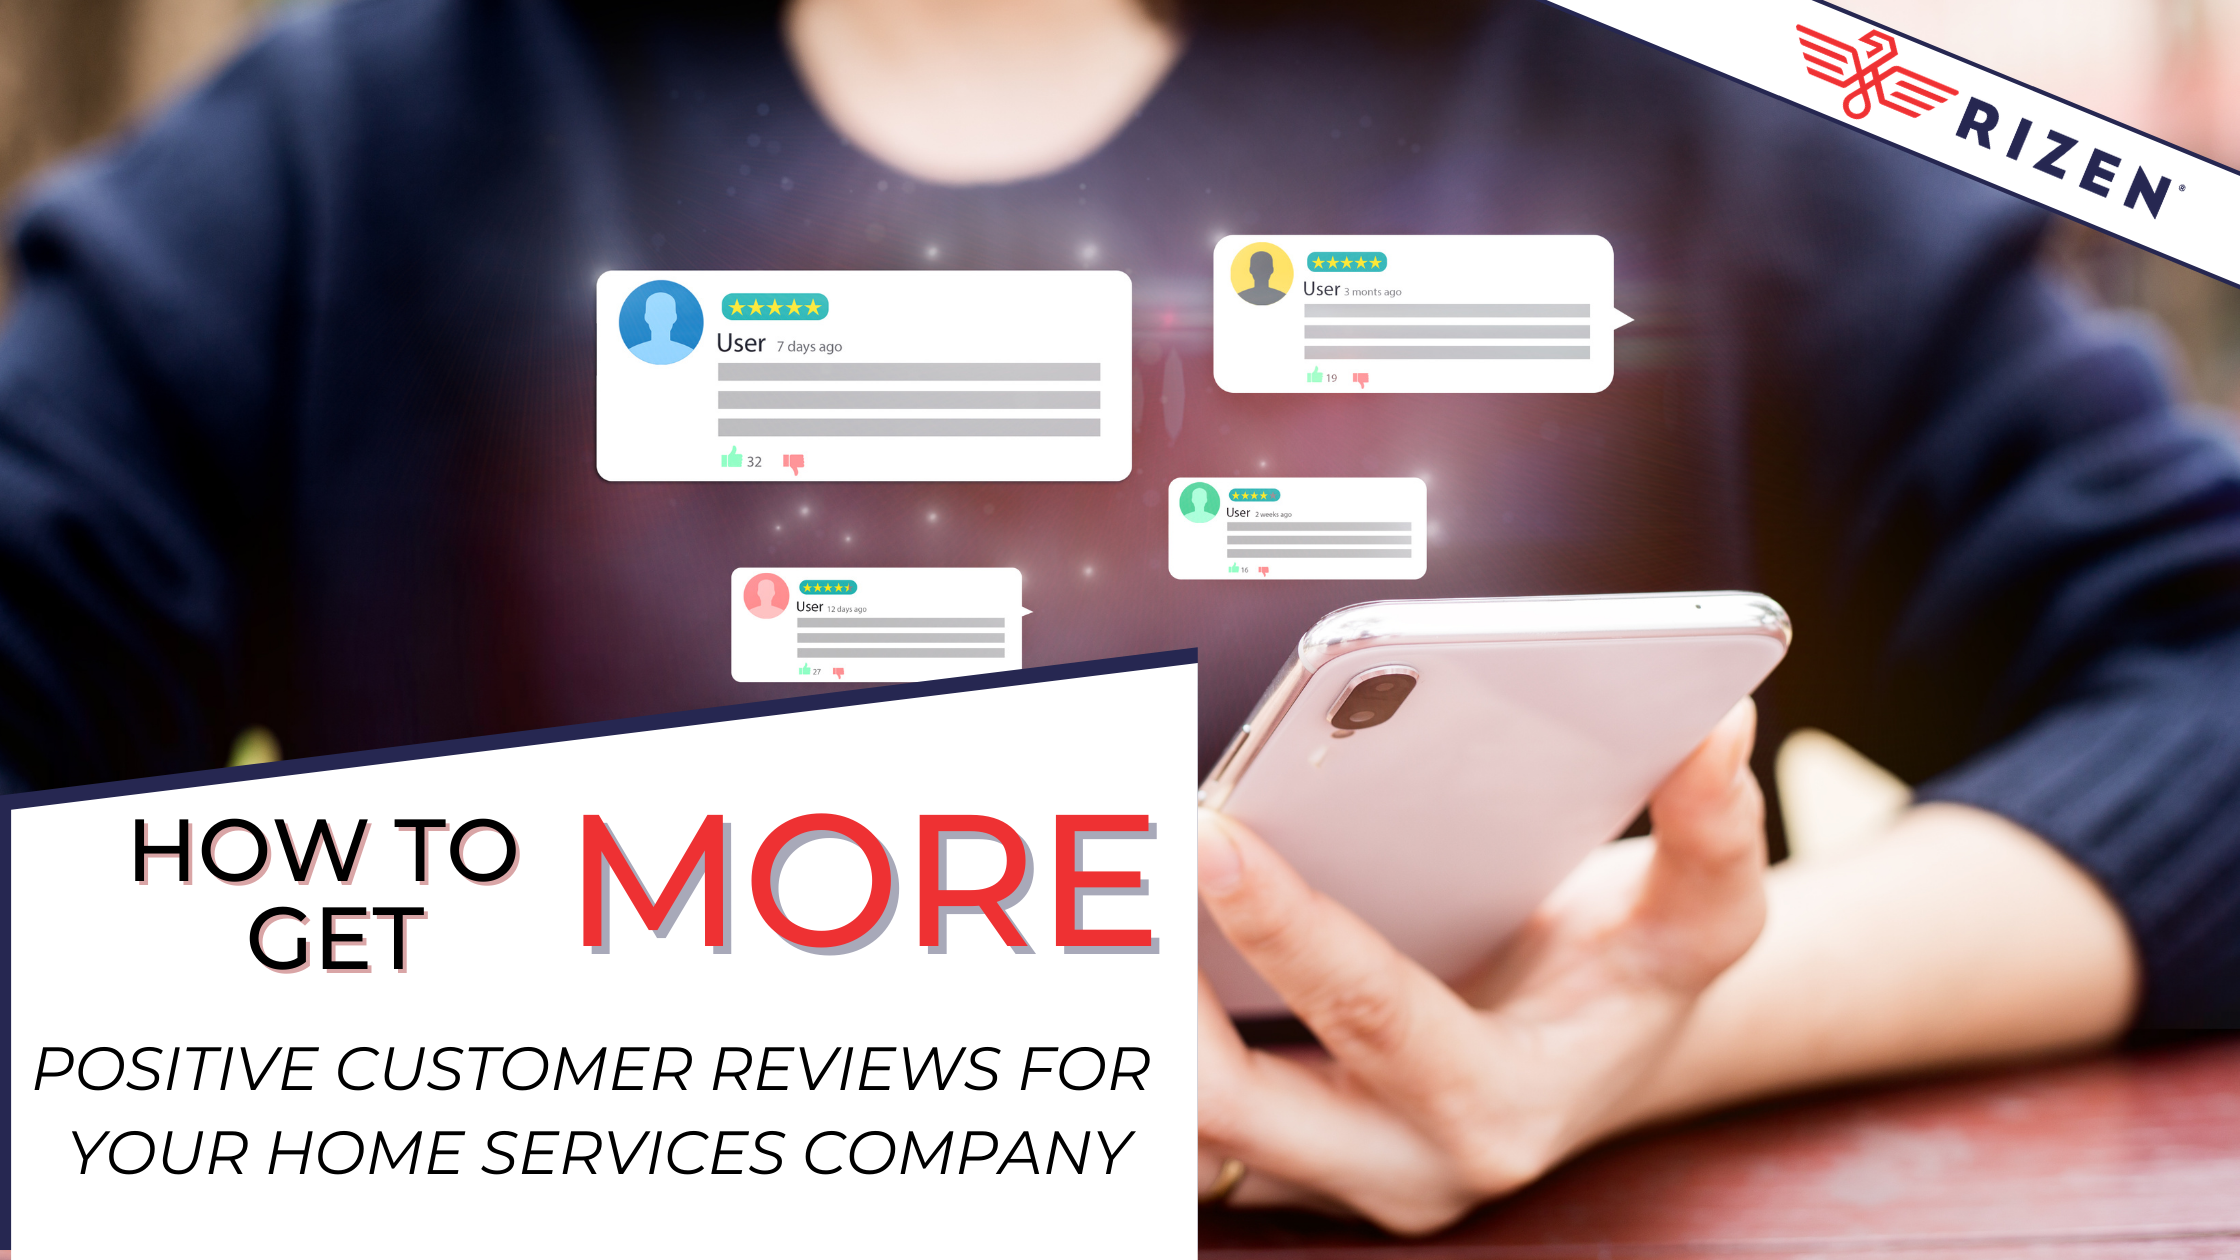 how to get more positive customer reviews for home services companies